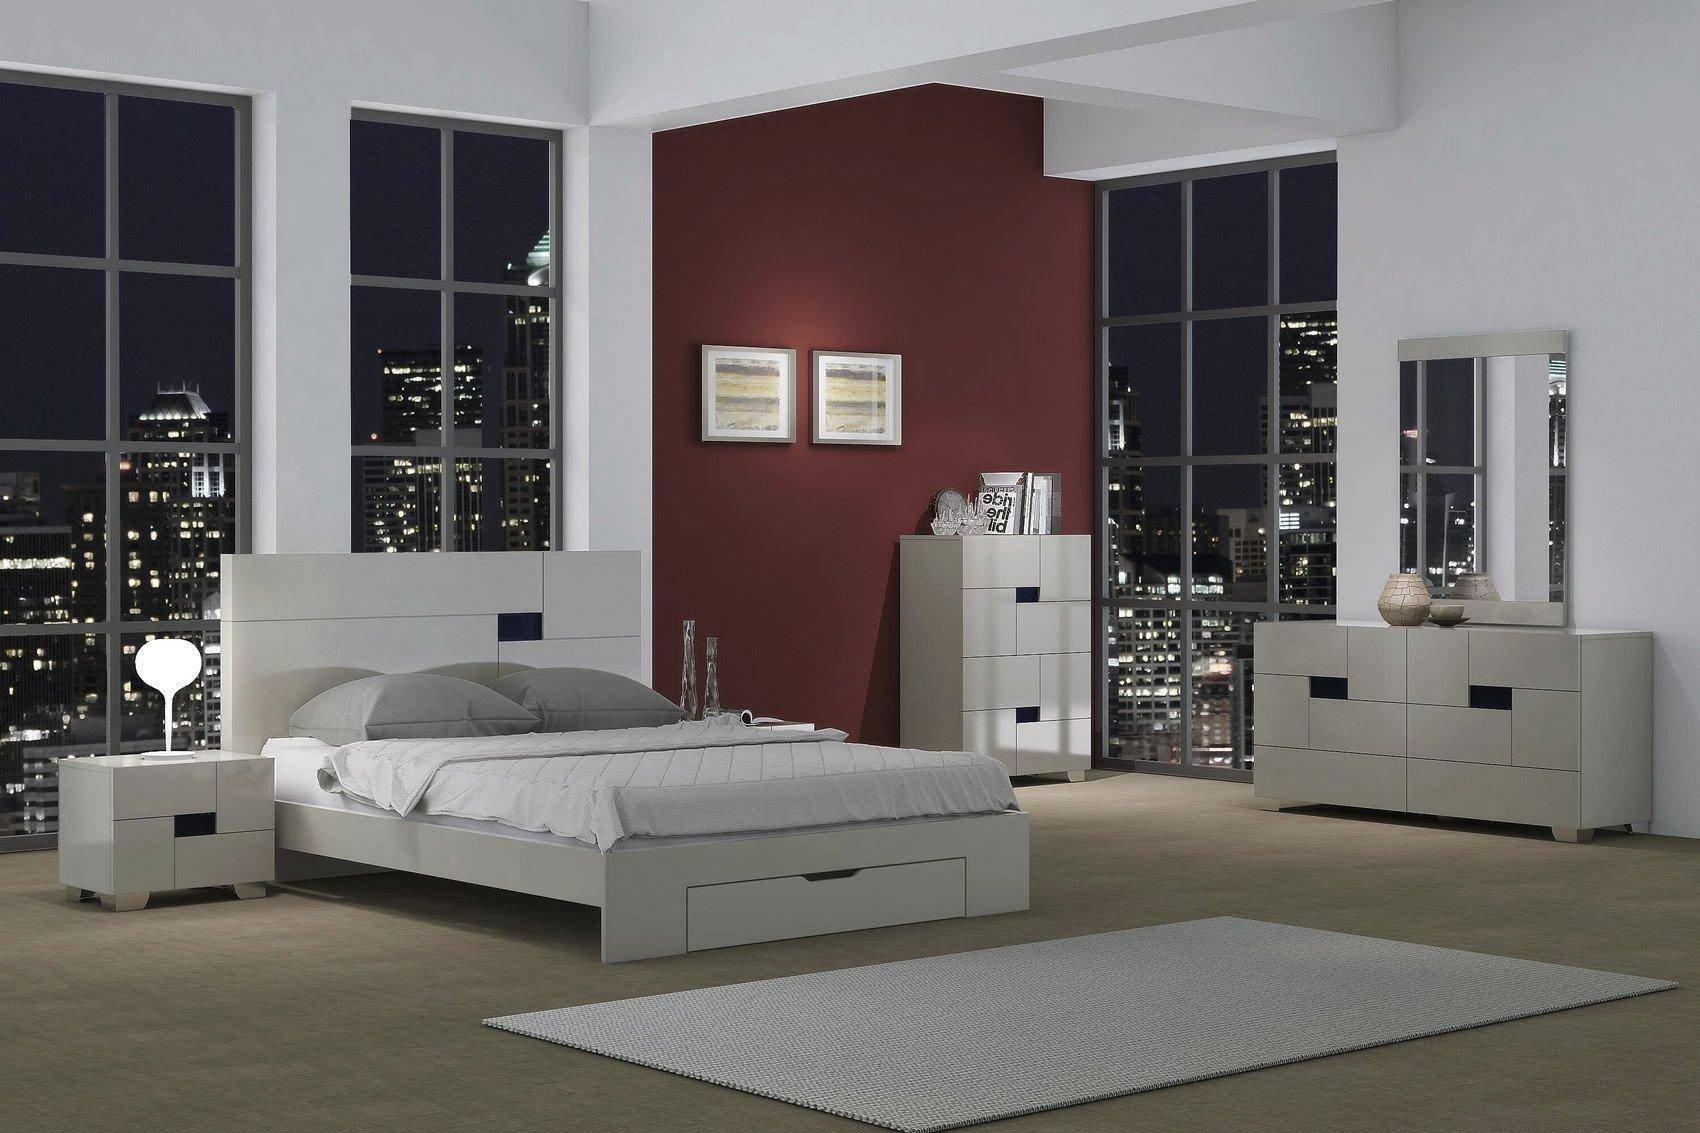 Cheap Bedroom Set Online Inspirational Contemporary Light Gray Lacquer Storage Queen Bedroom Set